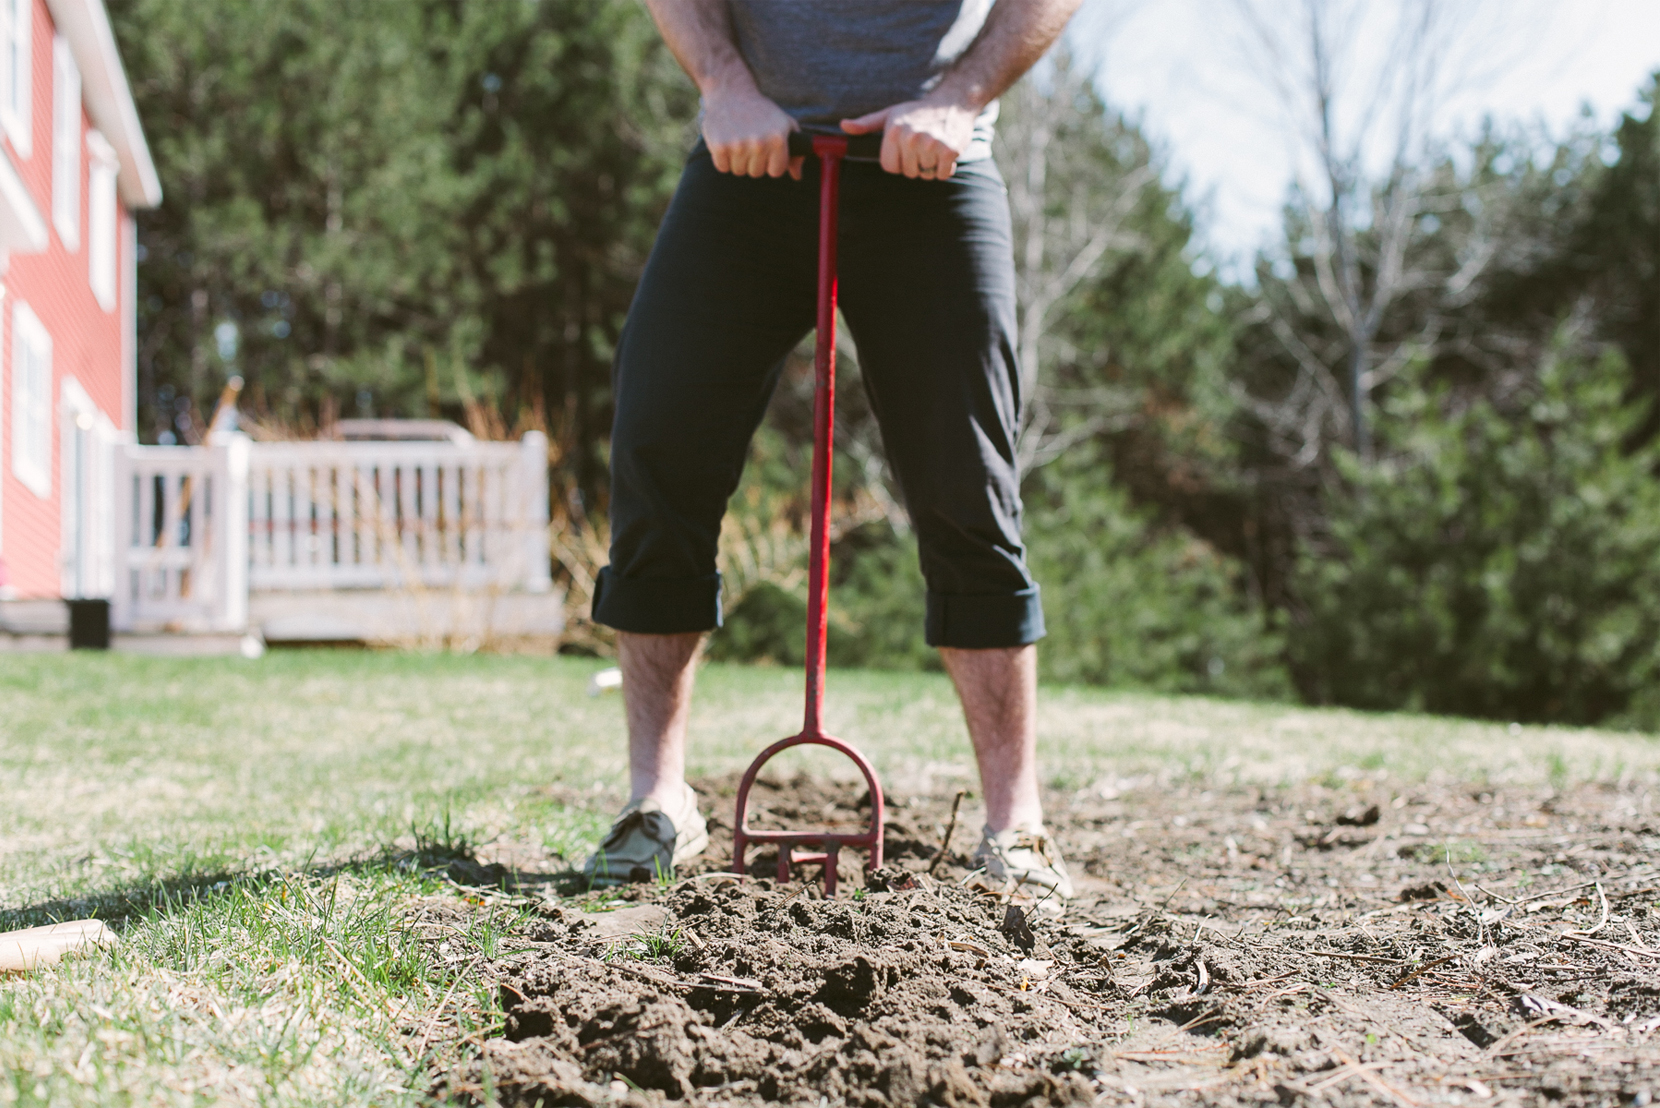 Gardening: Planning and Tilling  |  The Fresh Exchange